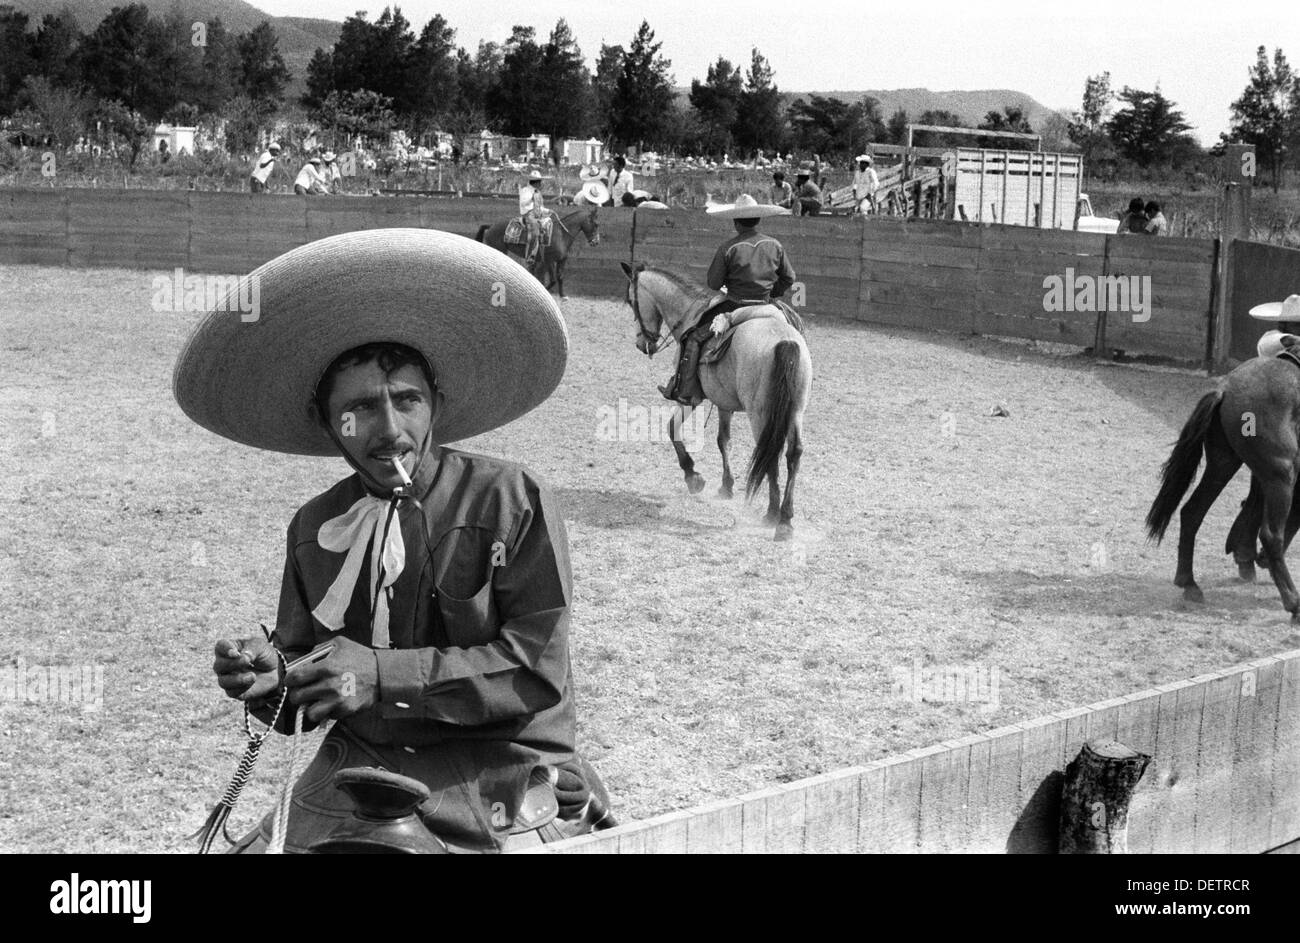 Sombrero Mexico Mexican cowboy known as Charros at a Rodeo 1973 HOMER SYKES 331c1c3e3b2